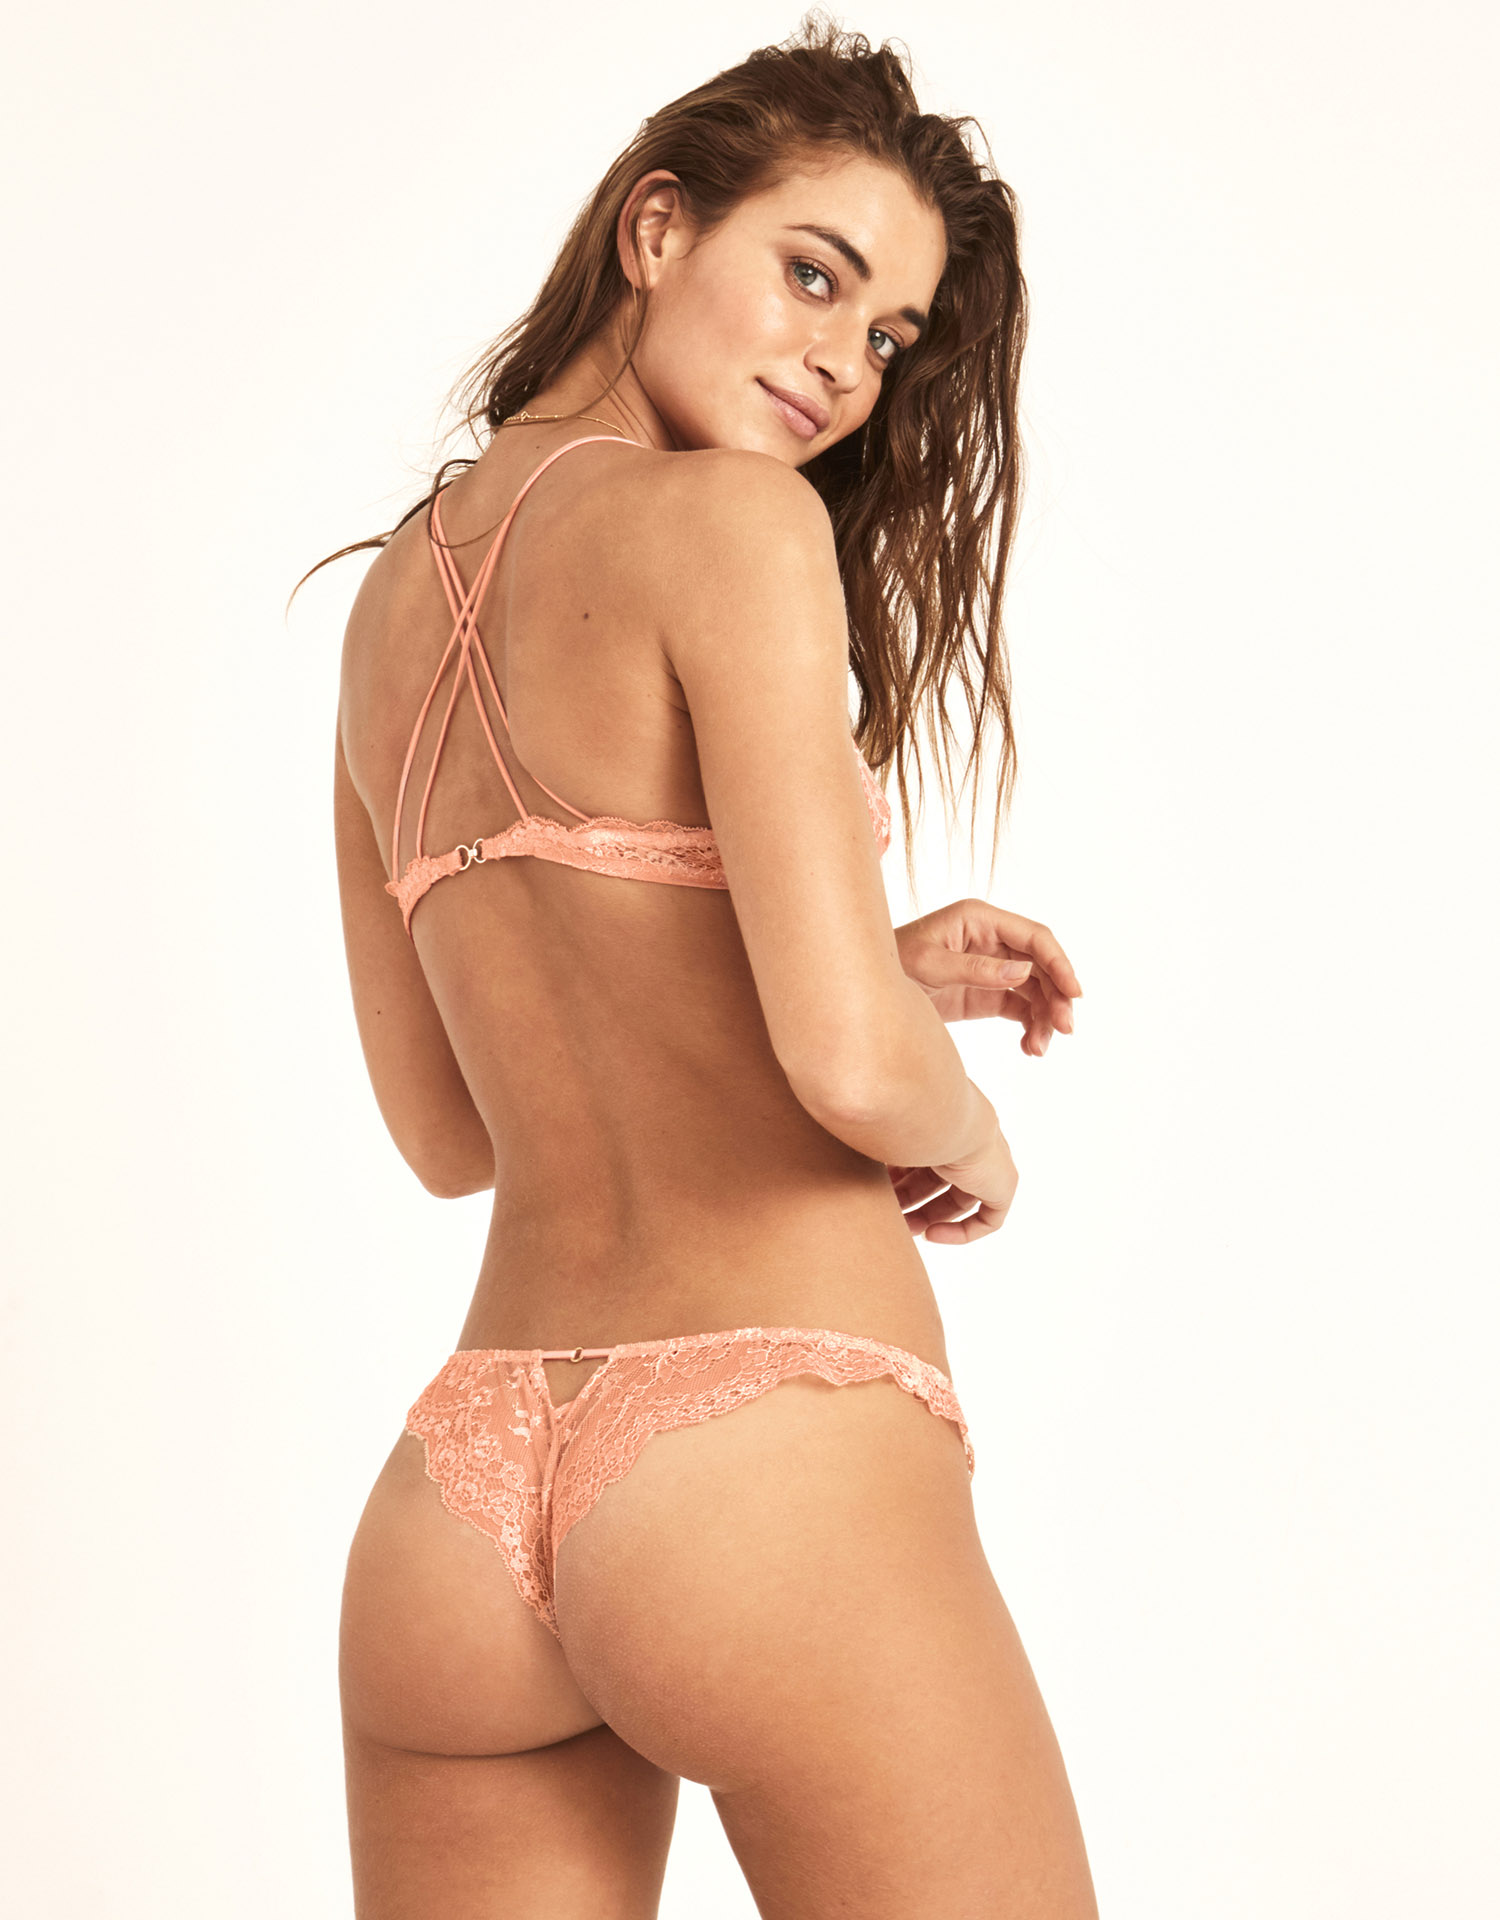 lingerie bra with underwires Gala Pêche 39 € Girls In Paris photo 2